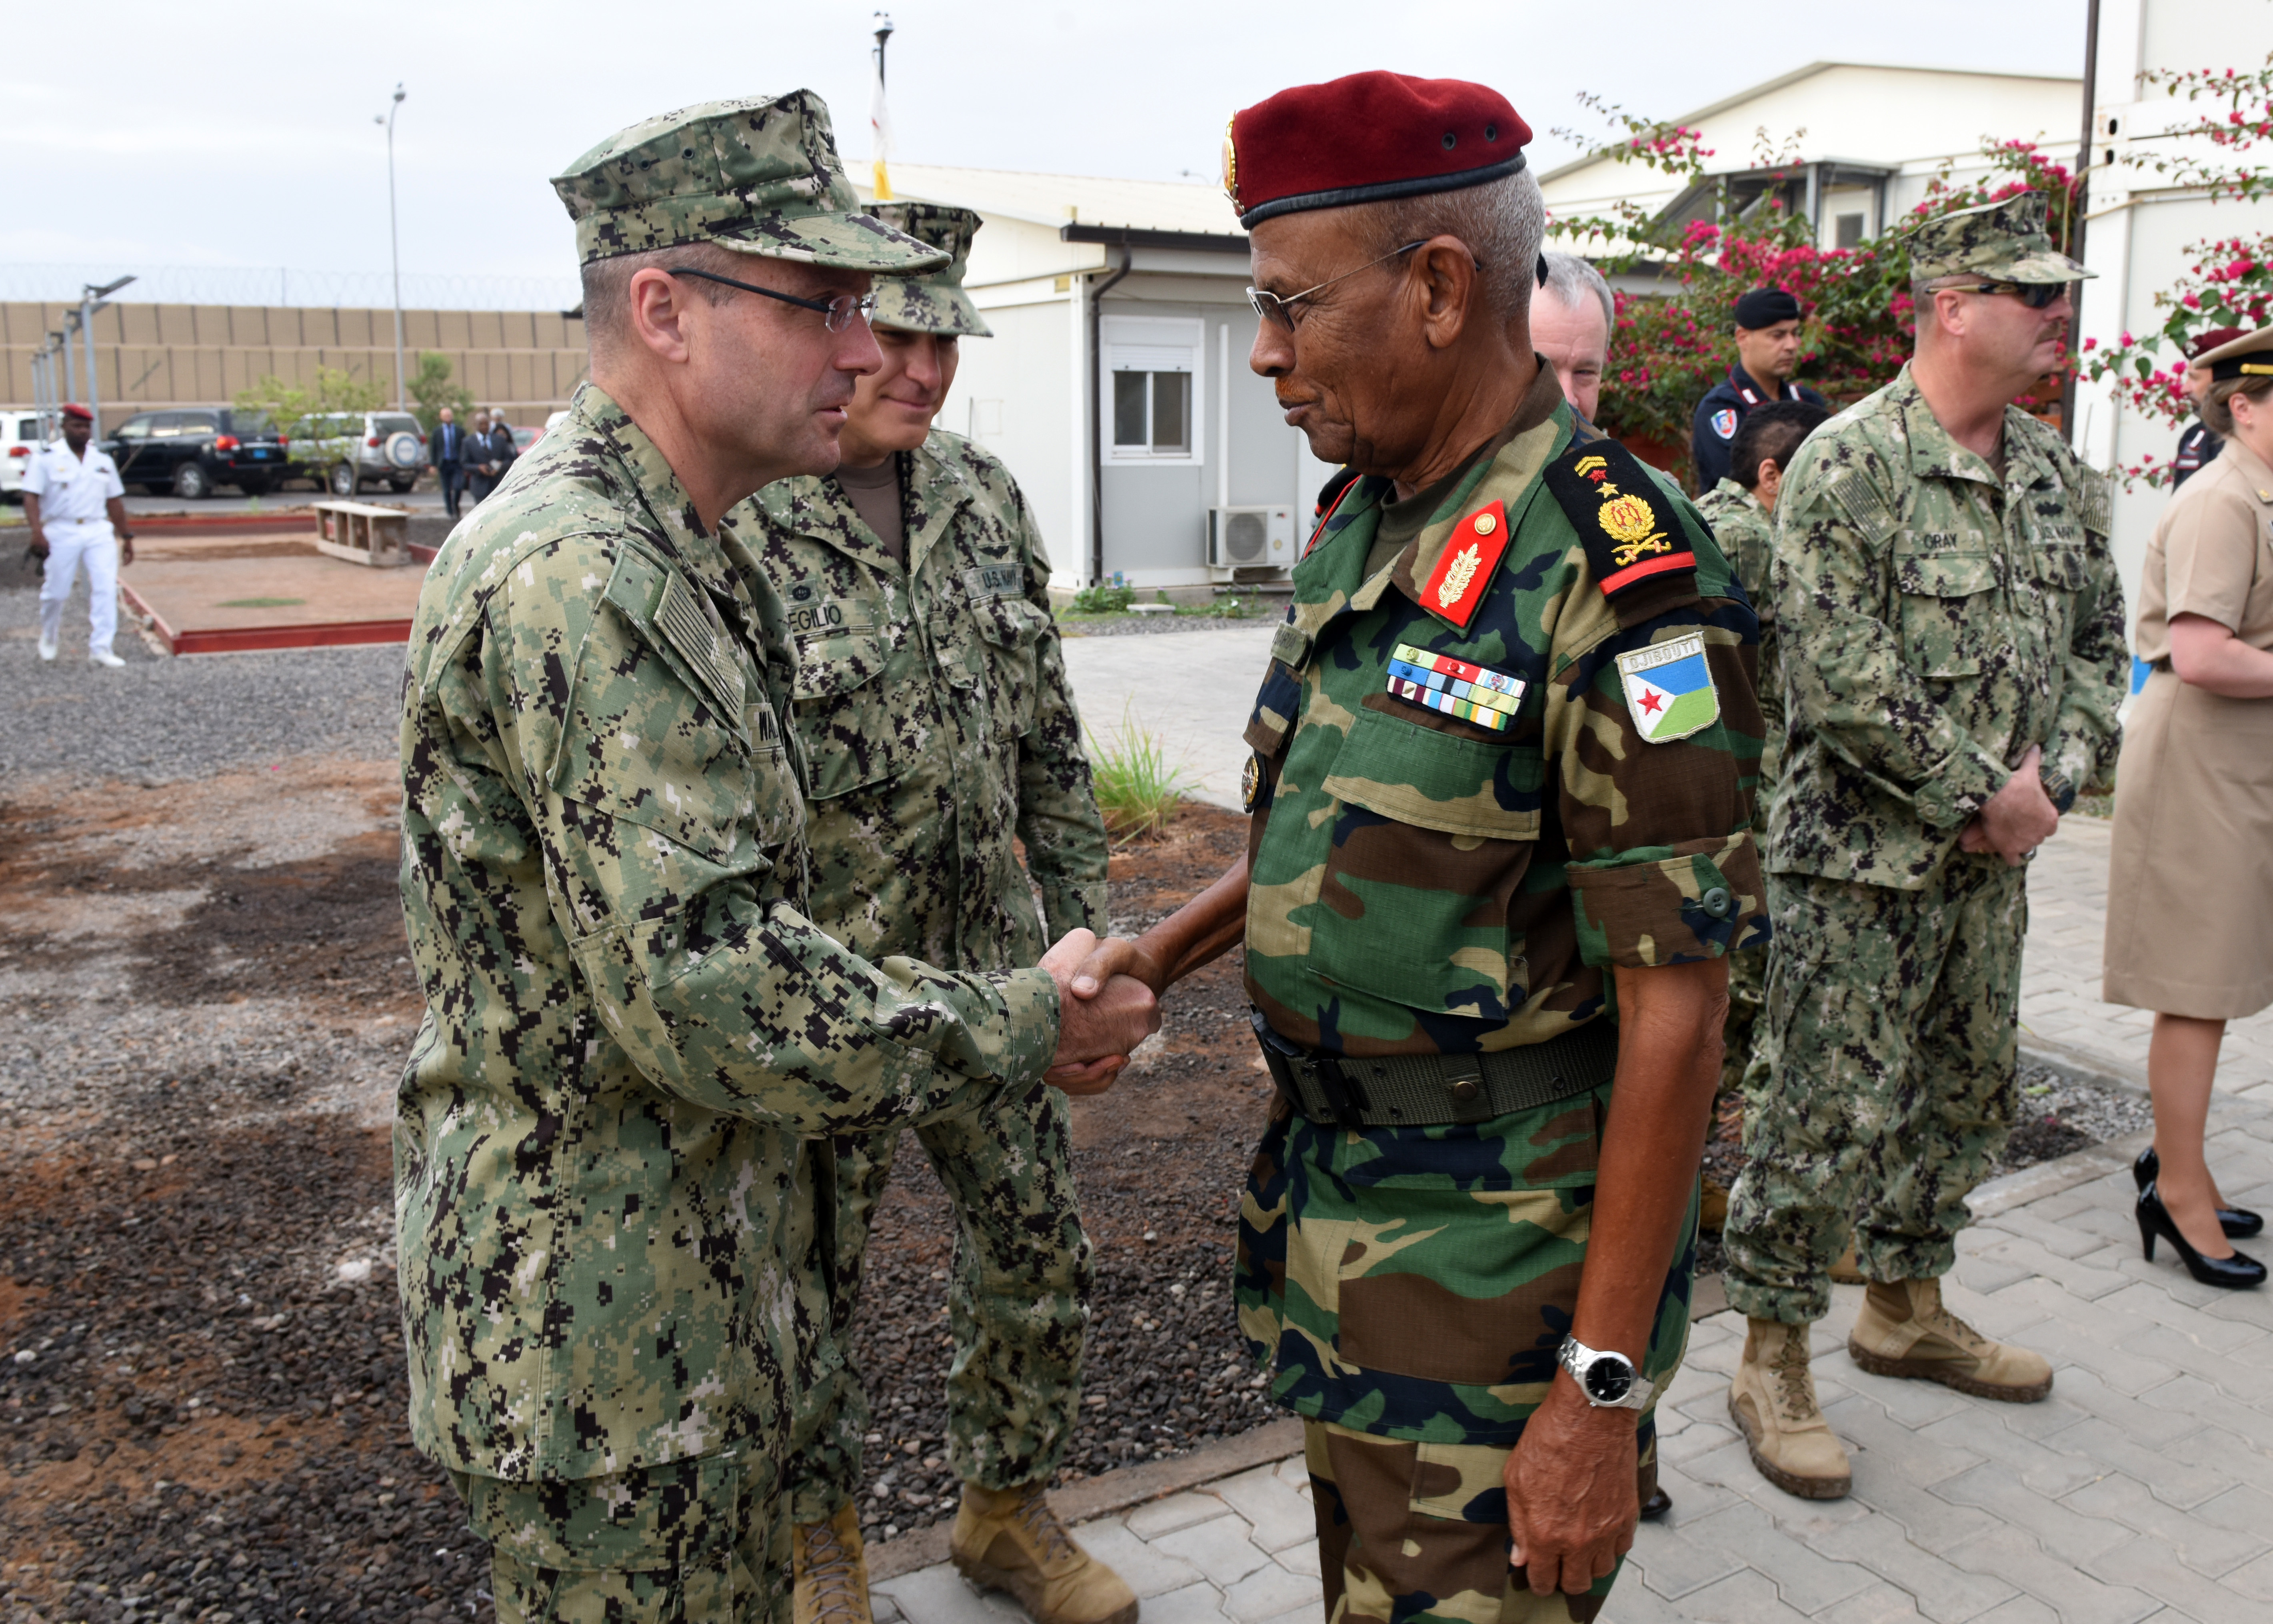 U.S. Navy Capt. Thomas Wall, chief of staff of Combined Joint Task Force-Horn of Africa,  greets Djiboutian army Gen. Zakaria Cheikh Ibrahim, chief of defense of Djibouti Armed Forces, during an anniversary ceremony at the Italian National Military Support Base, Djibouti, Feb. 19, 2019. Wall attended the ceremony, which celebrated the Italian base's fifth year in Djibouti, to show support for U.S. partner and coalition forces. (U.S. Air Force photo by Staff Sgt. Franklin R. Ramos)